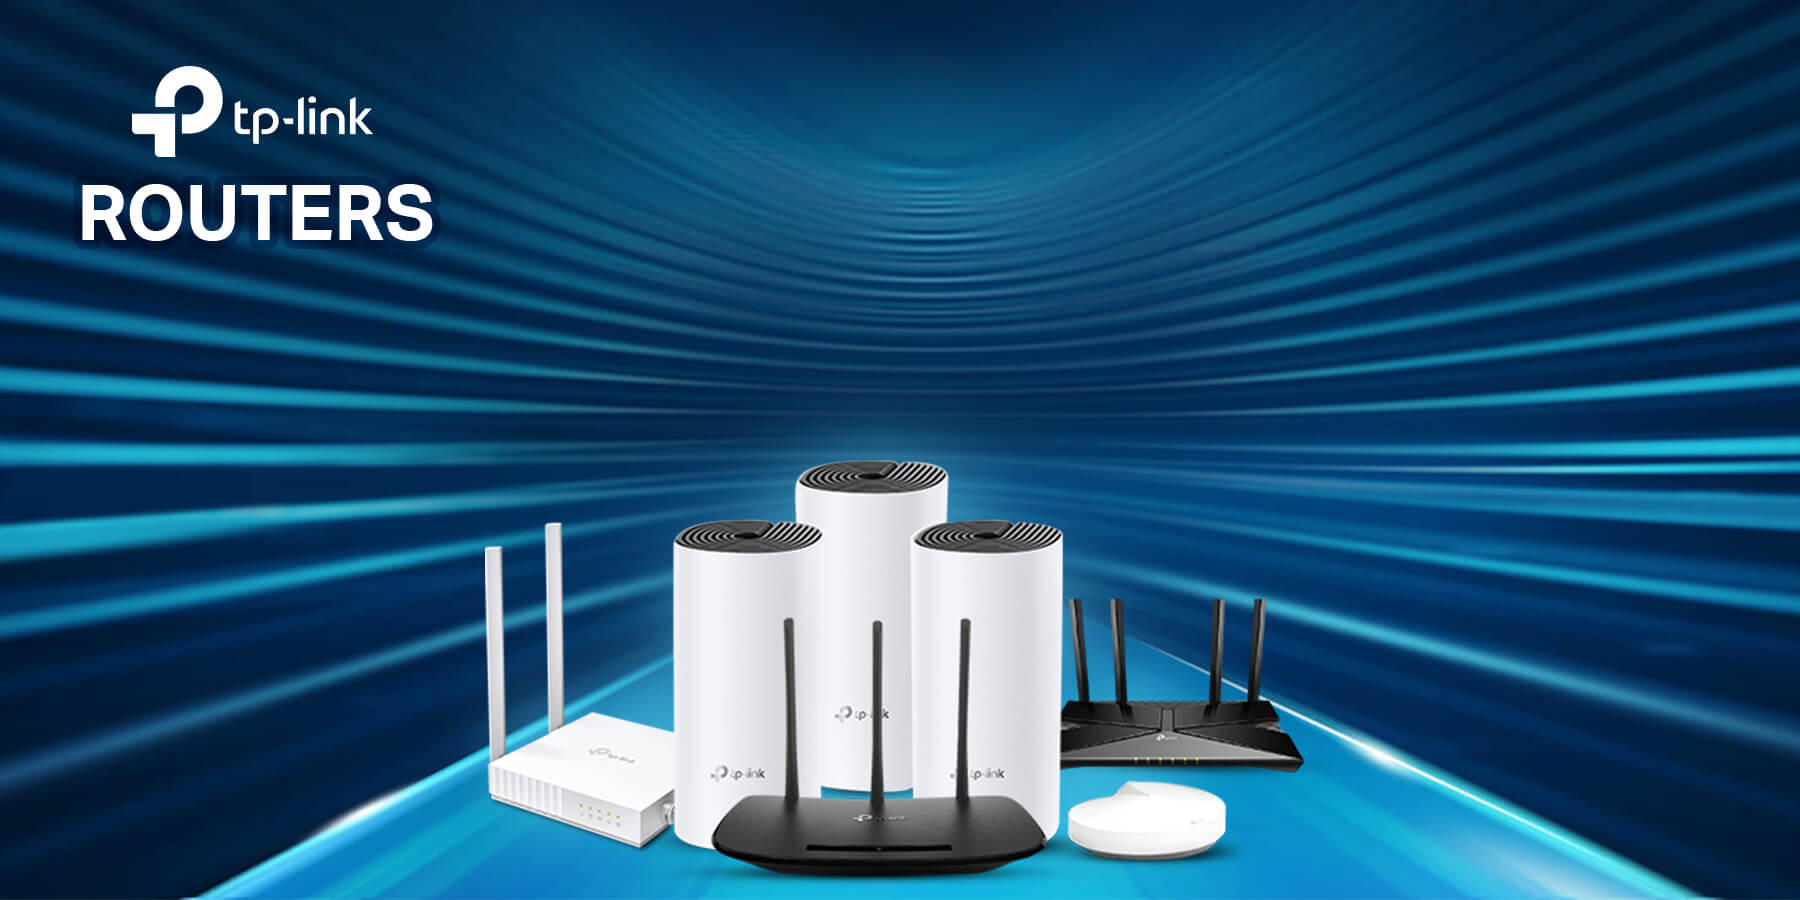 Best_5_Tp_Link_Router_in_Bangladesh